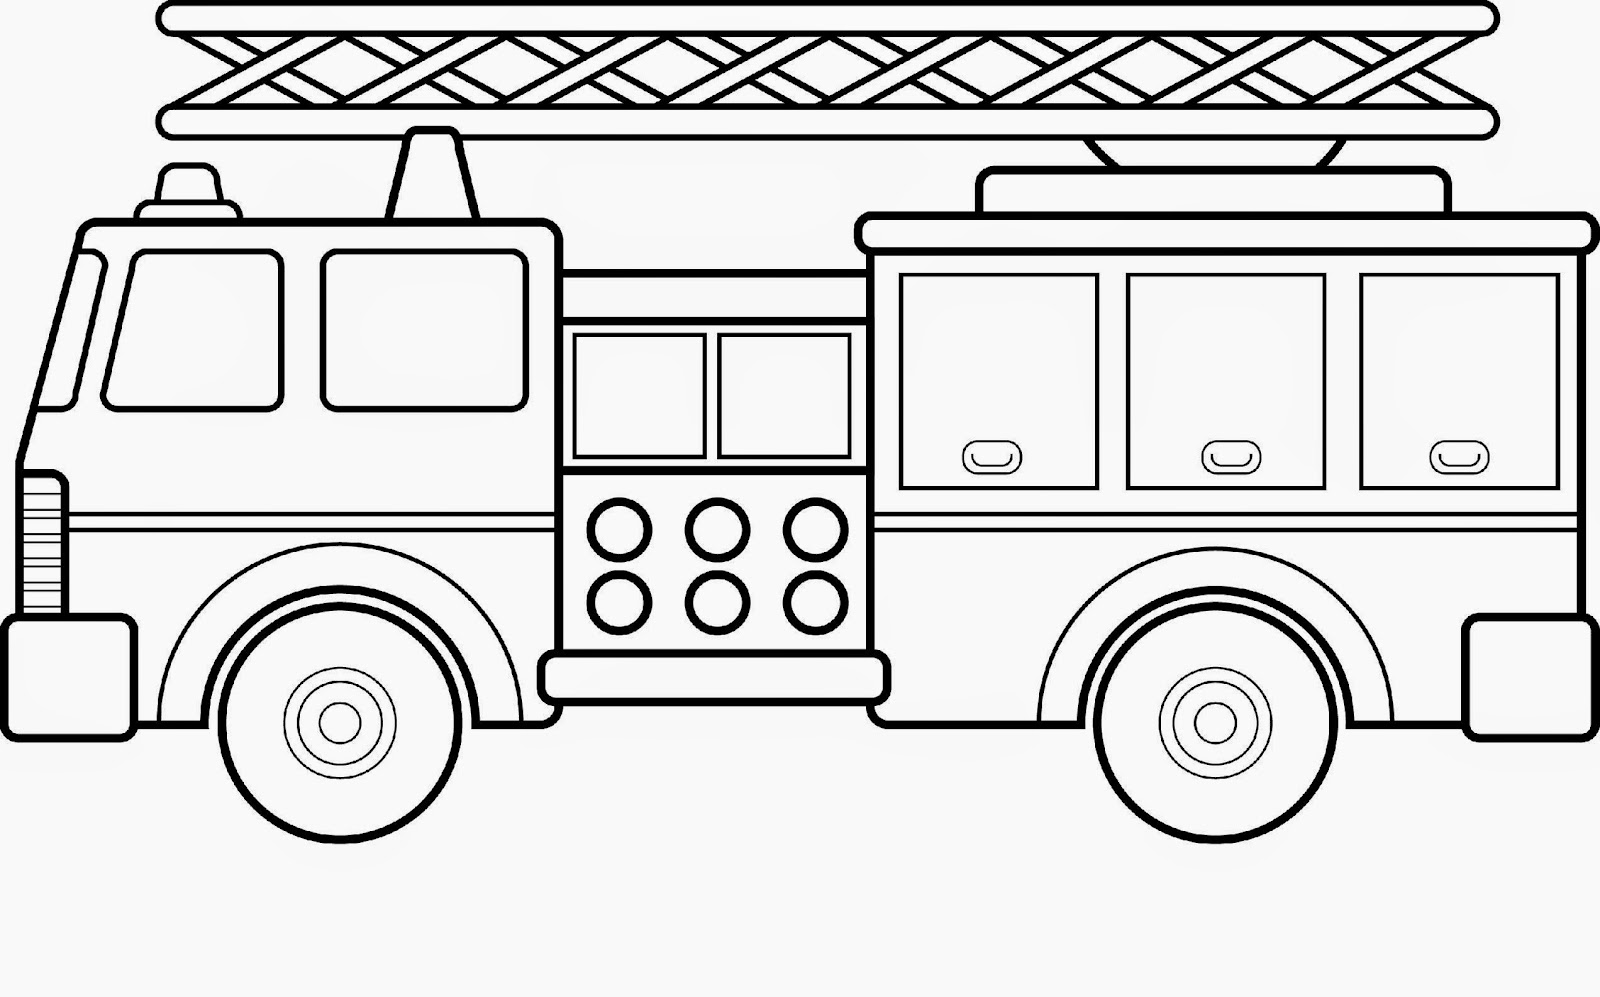 Truck coloring sheets free coloring sheet for Free truck coloring pages